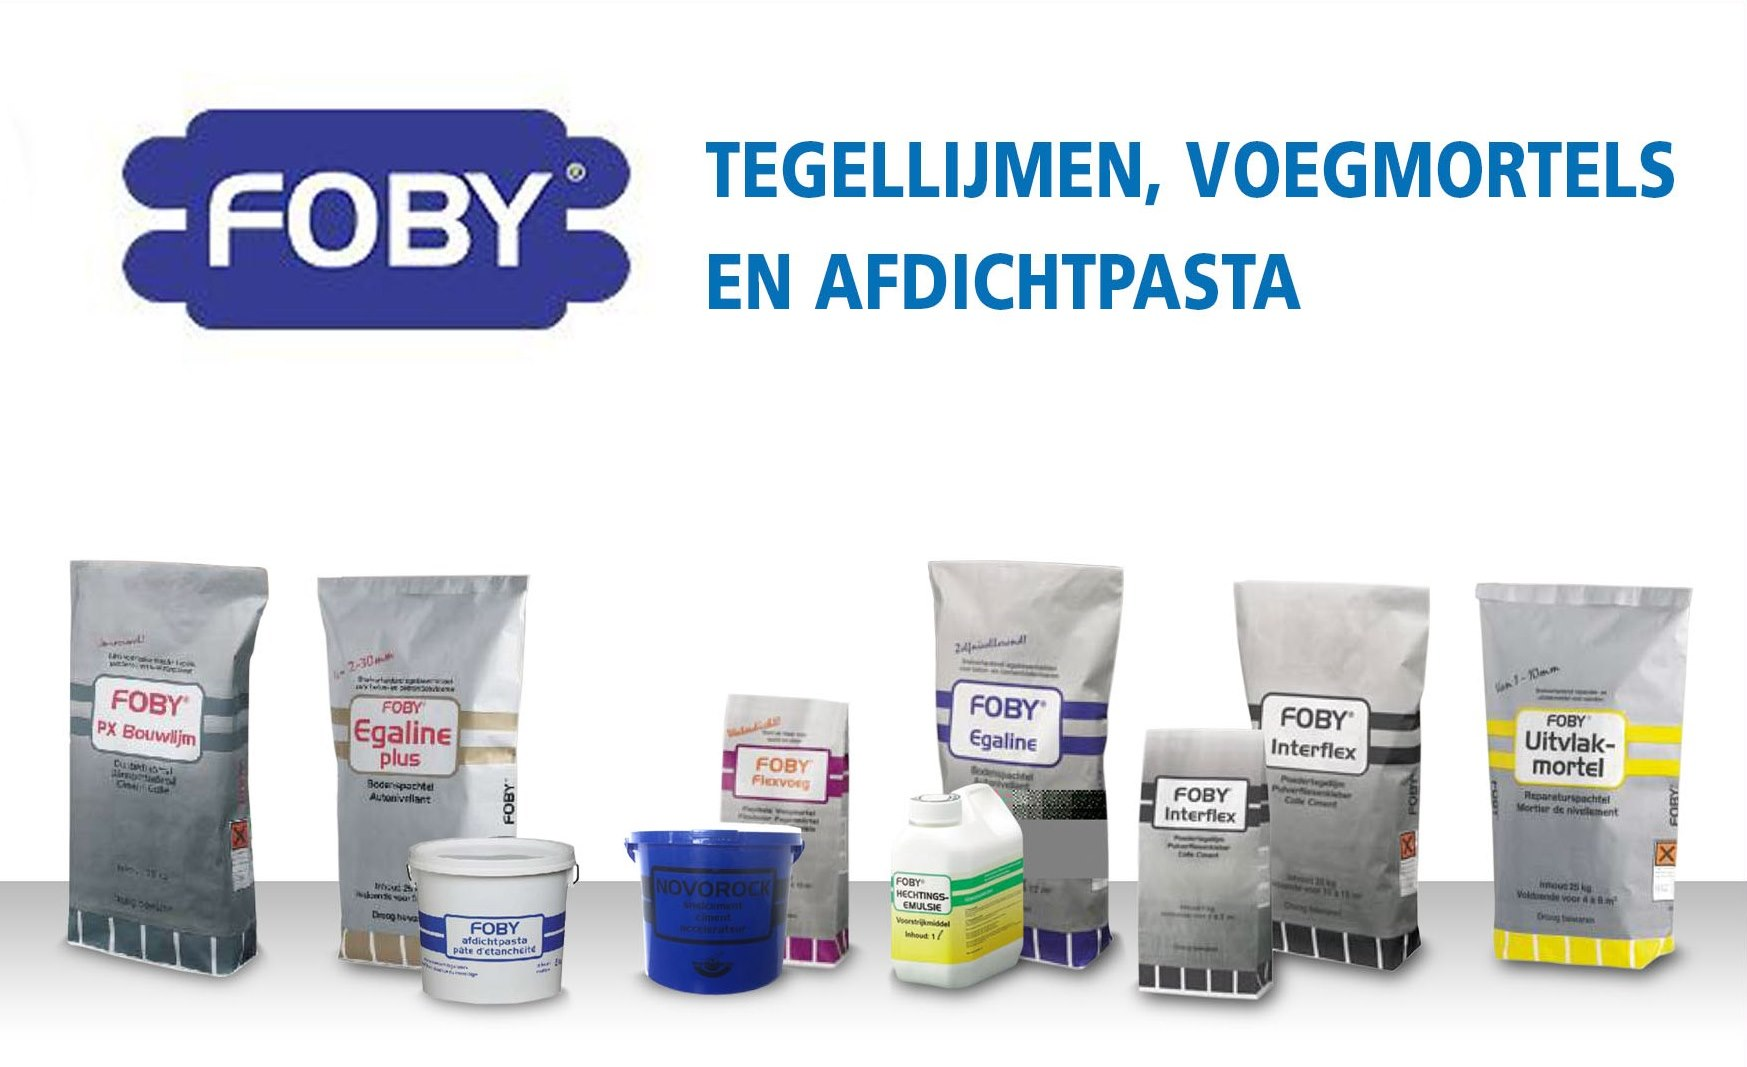 ad_foby-2015-1